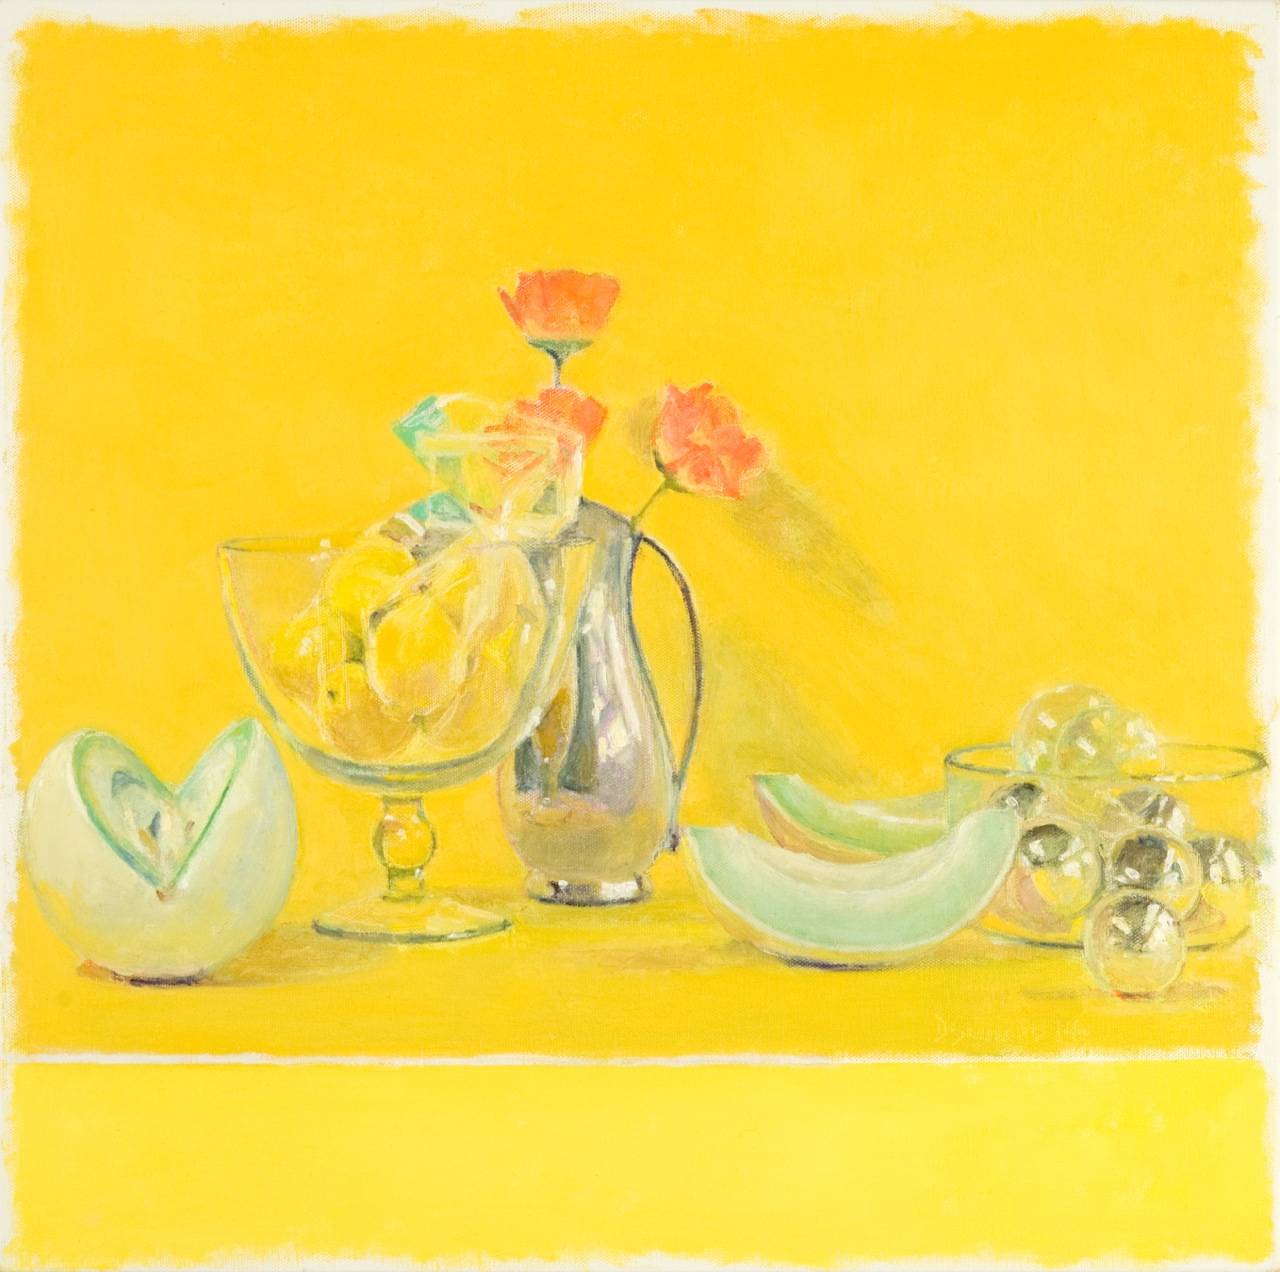 Happy Yellow Still Life with Shrouded Lemons, Melon and Bowl of Baubles by David Summers at Les Yeux du Monde Art Gallery